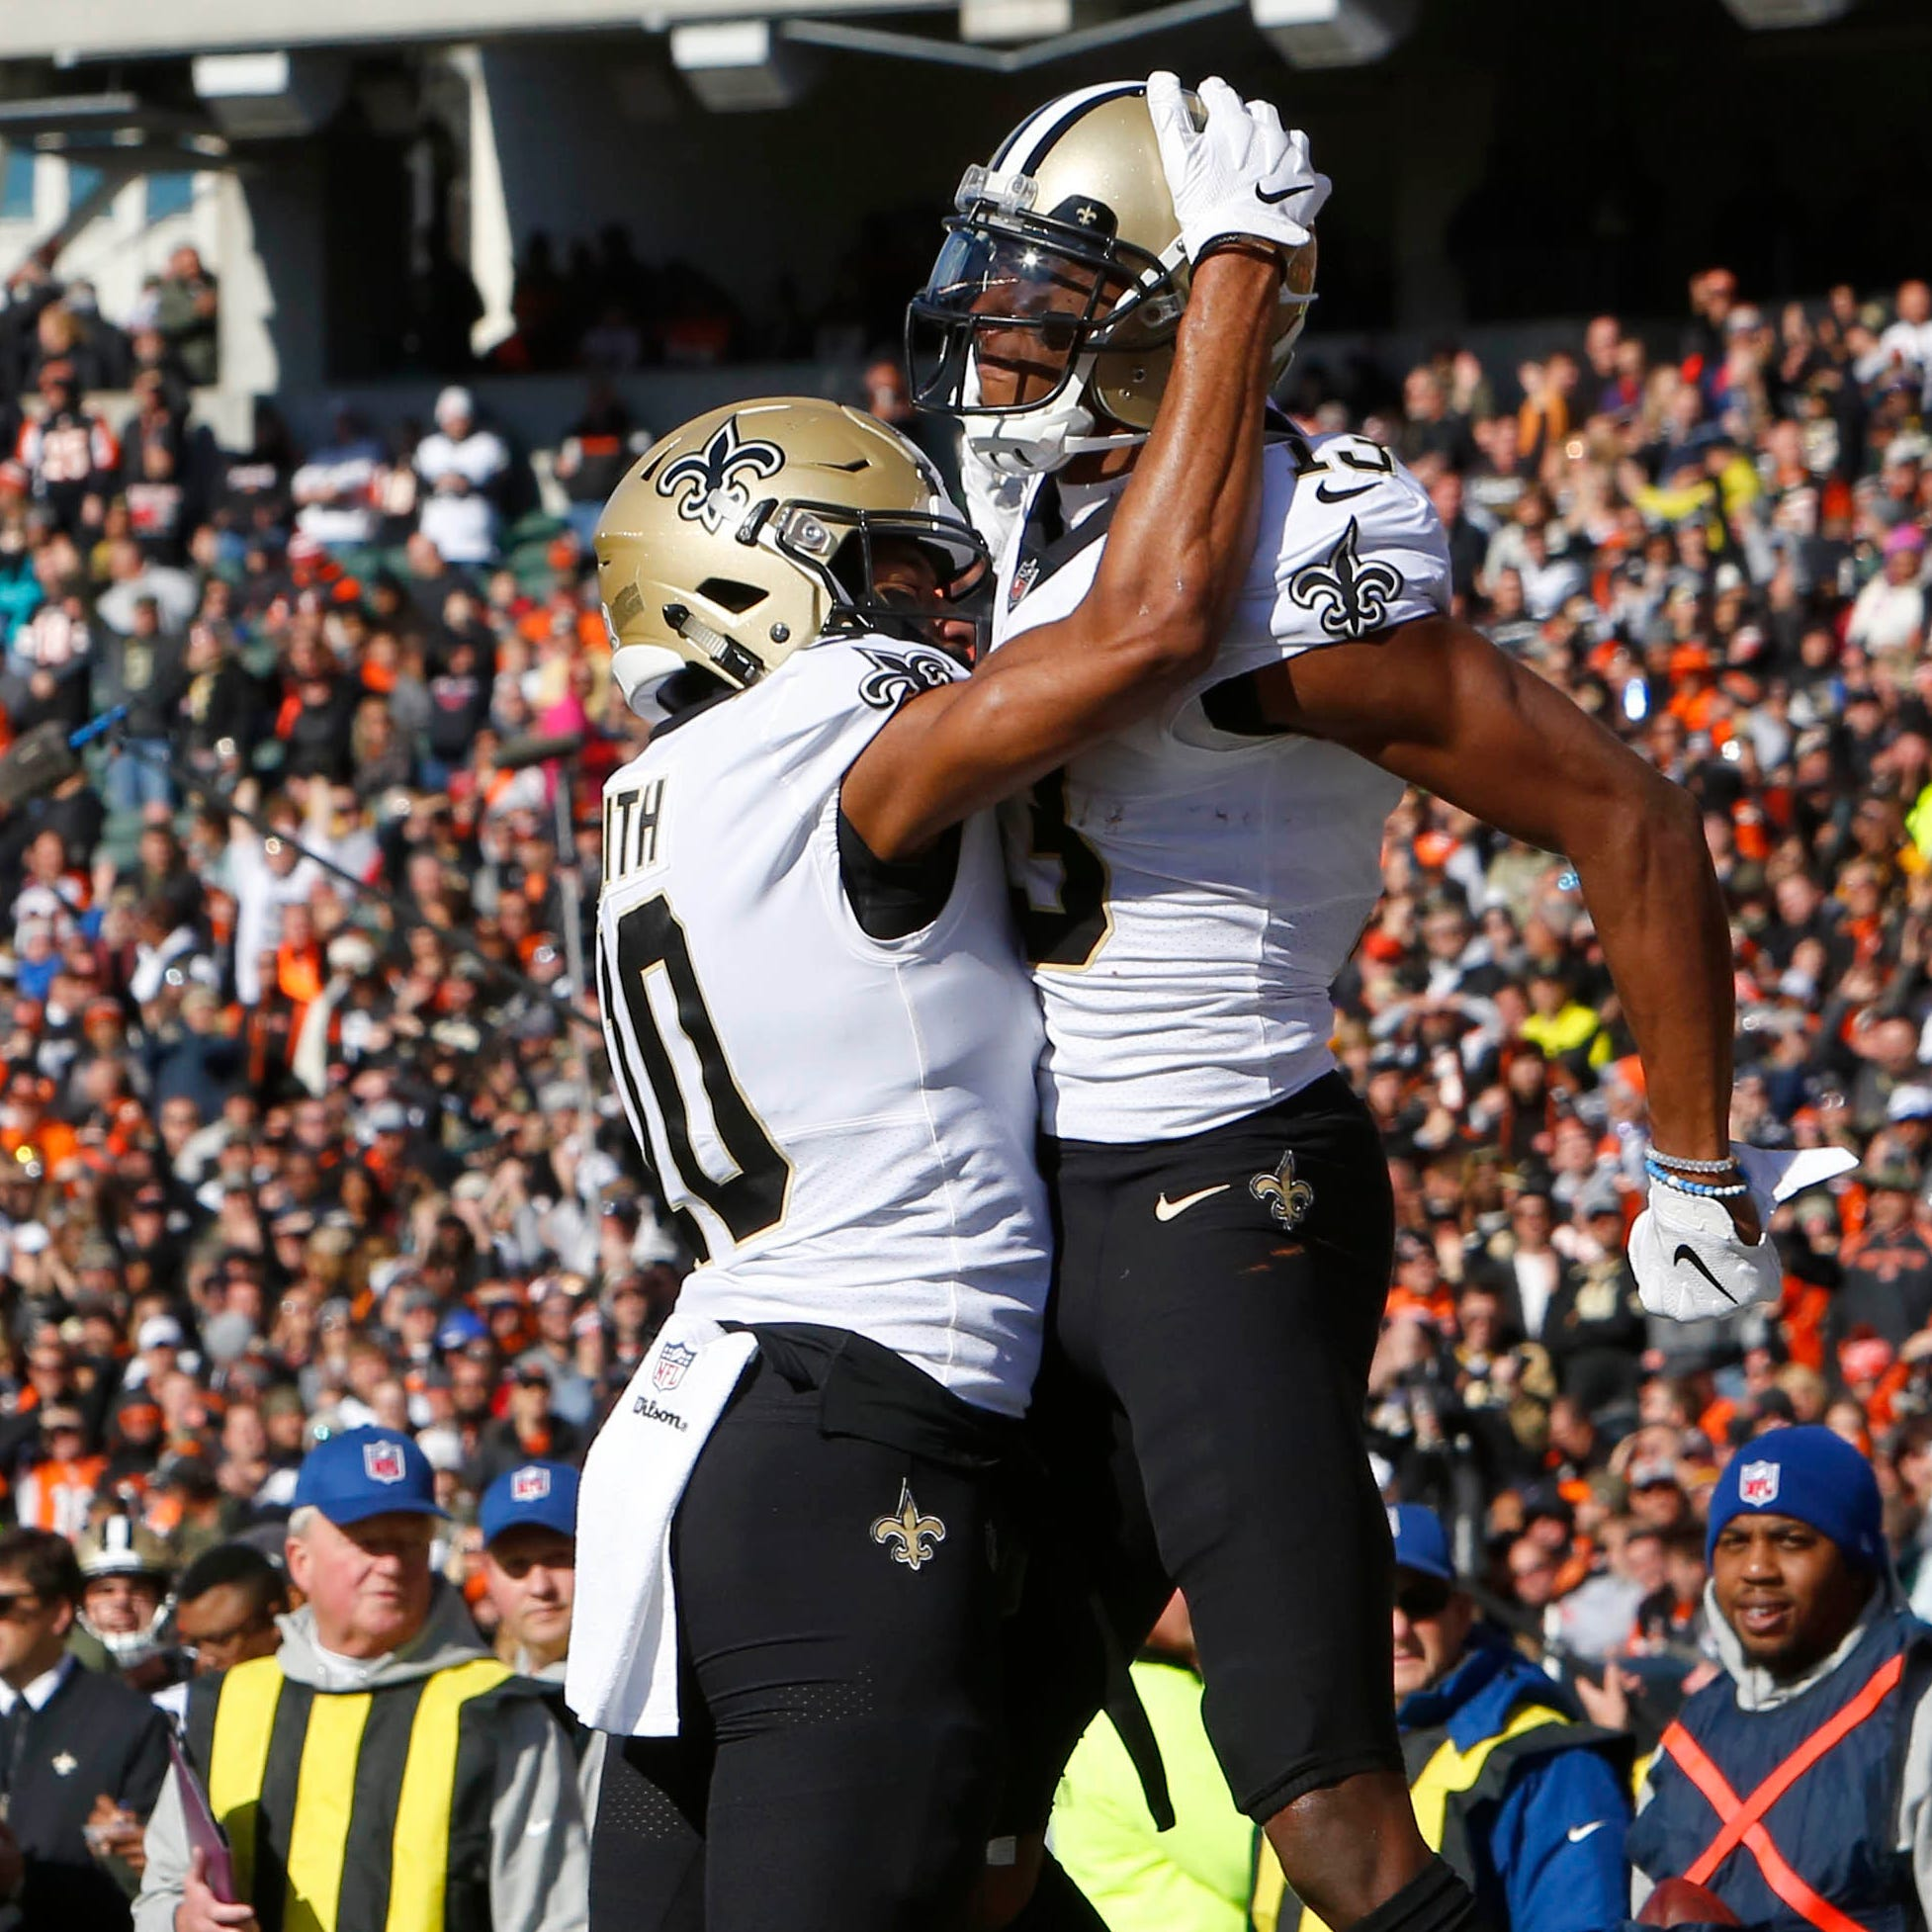 New Orleans Saints wide receiver Michael Thomas (right) reacts with wide receiver Tre'Quan Smith (10) after Thomas scored a touchdown against the Cincinnati Bengals in the first quarter at Paul Brown Stadium.